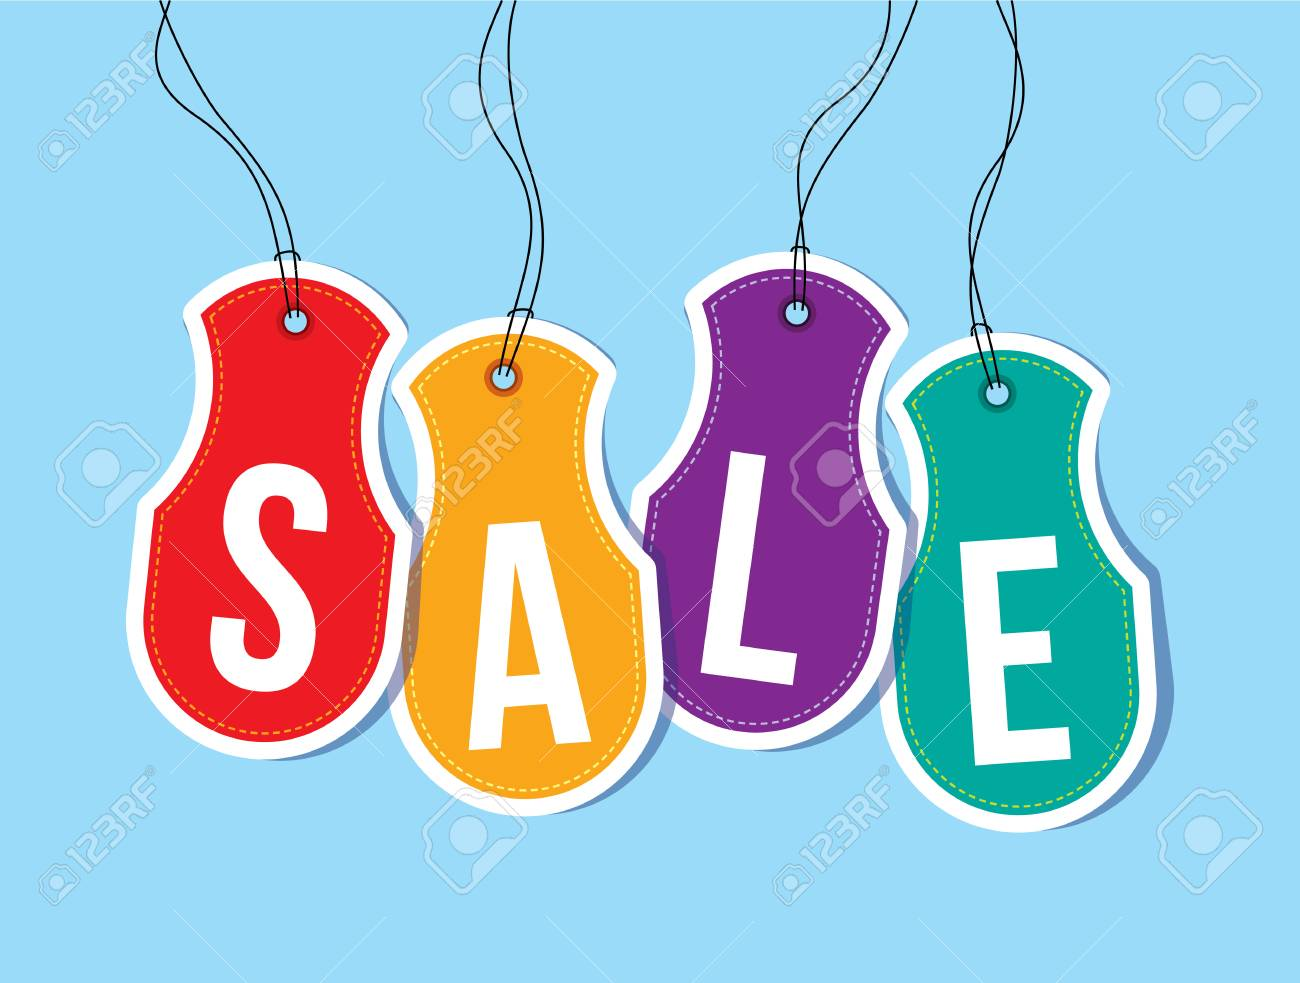 sale shopping background and label for business promotion - 39943777